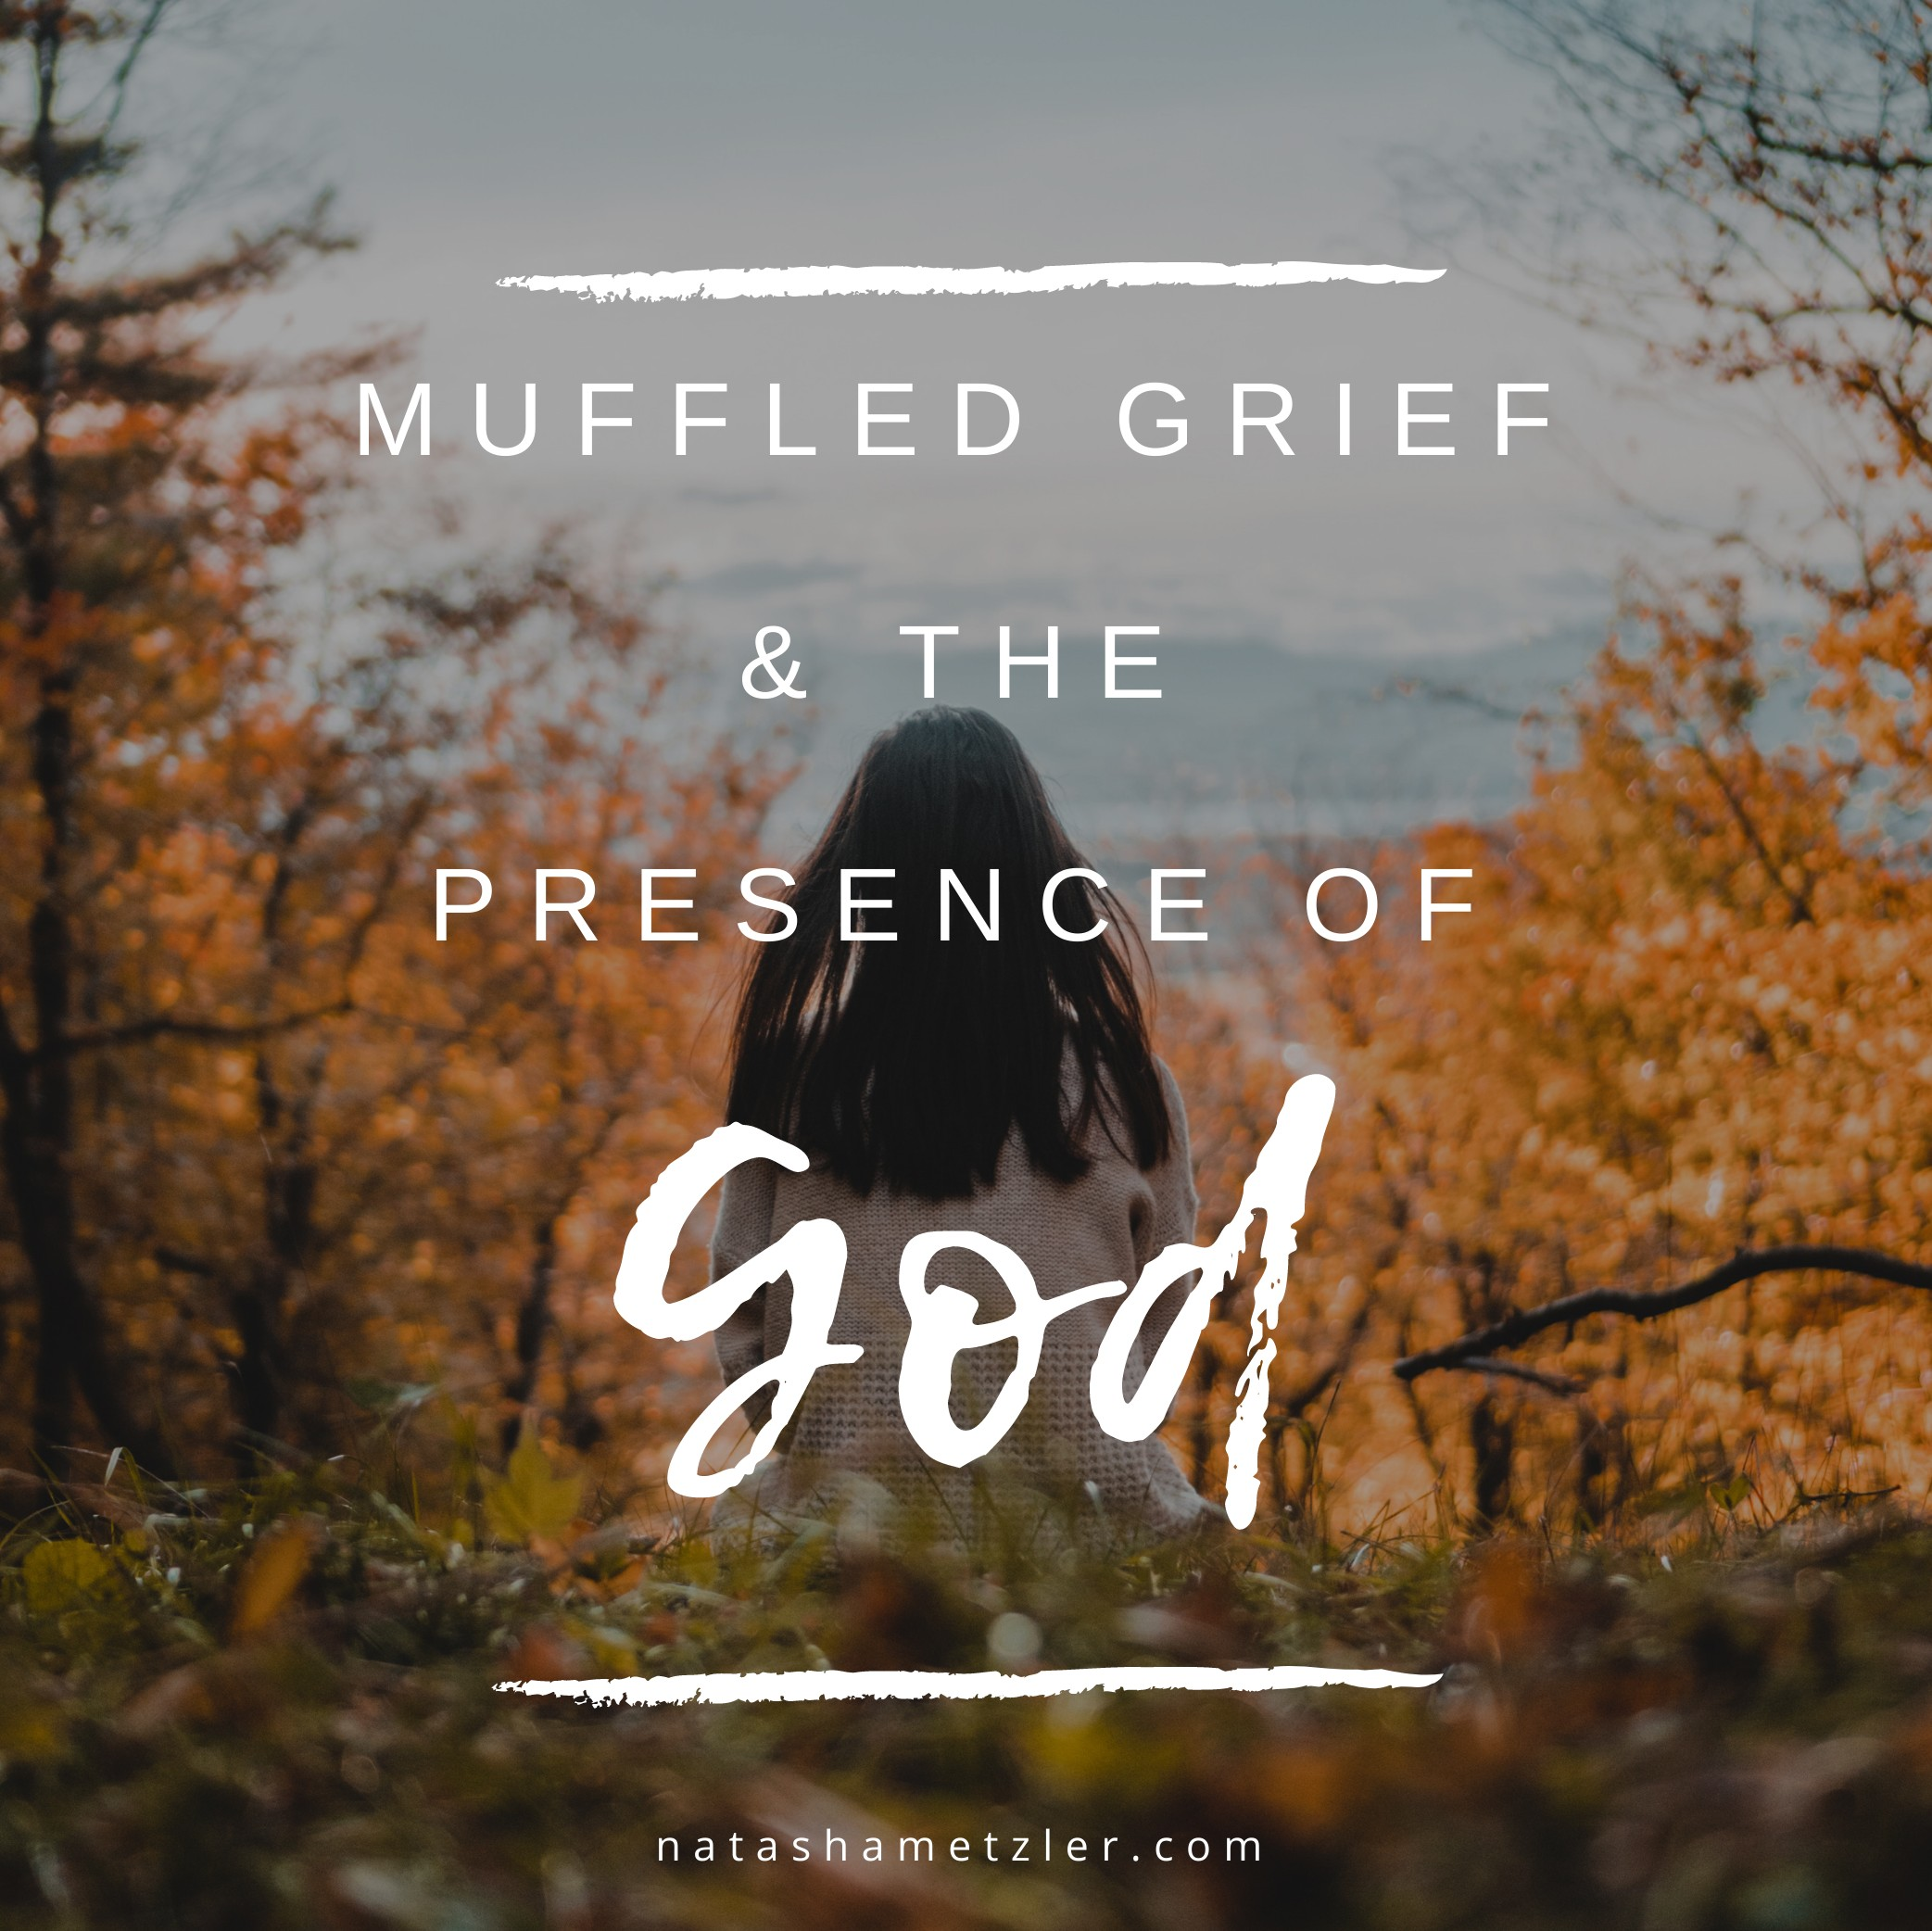 Muffled Grief & the Presence of God